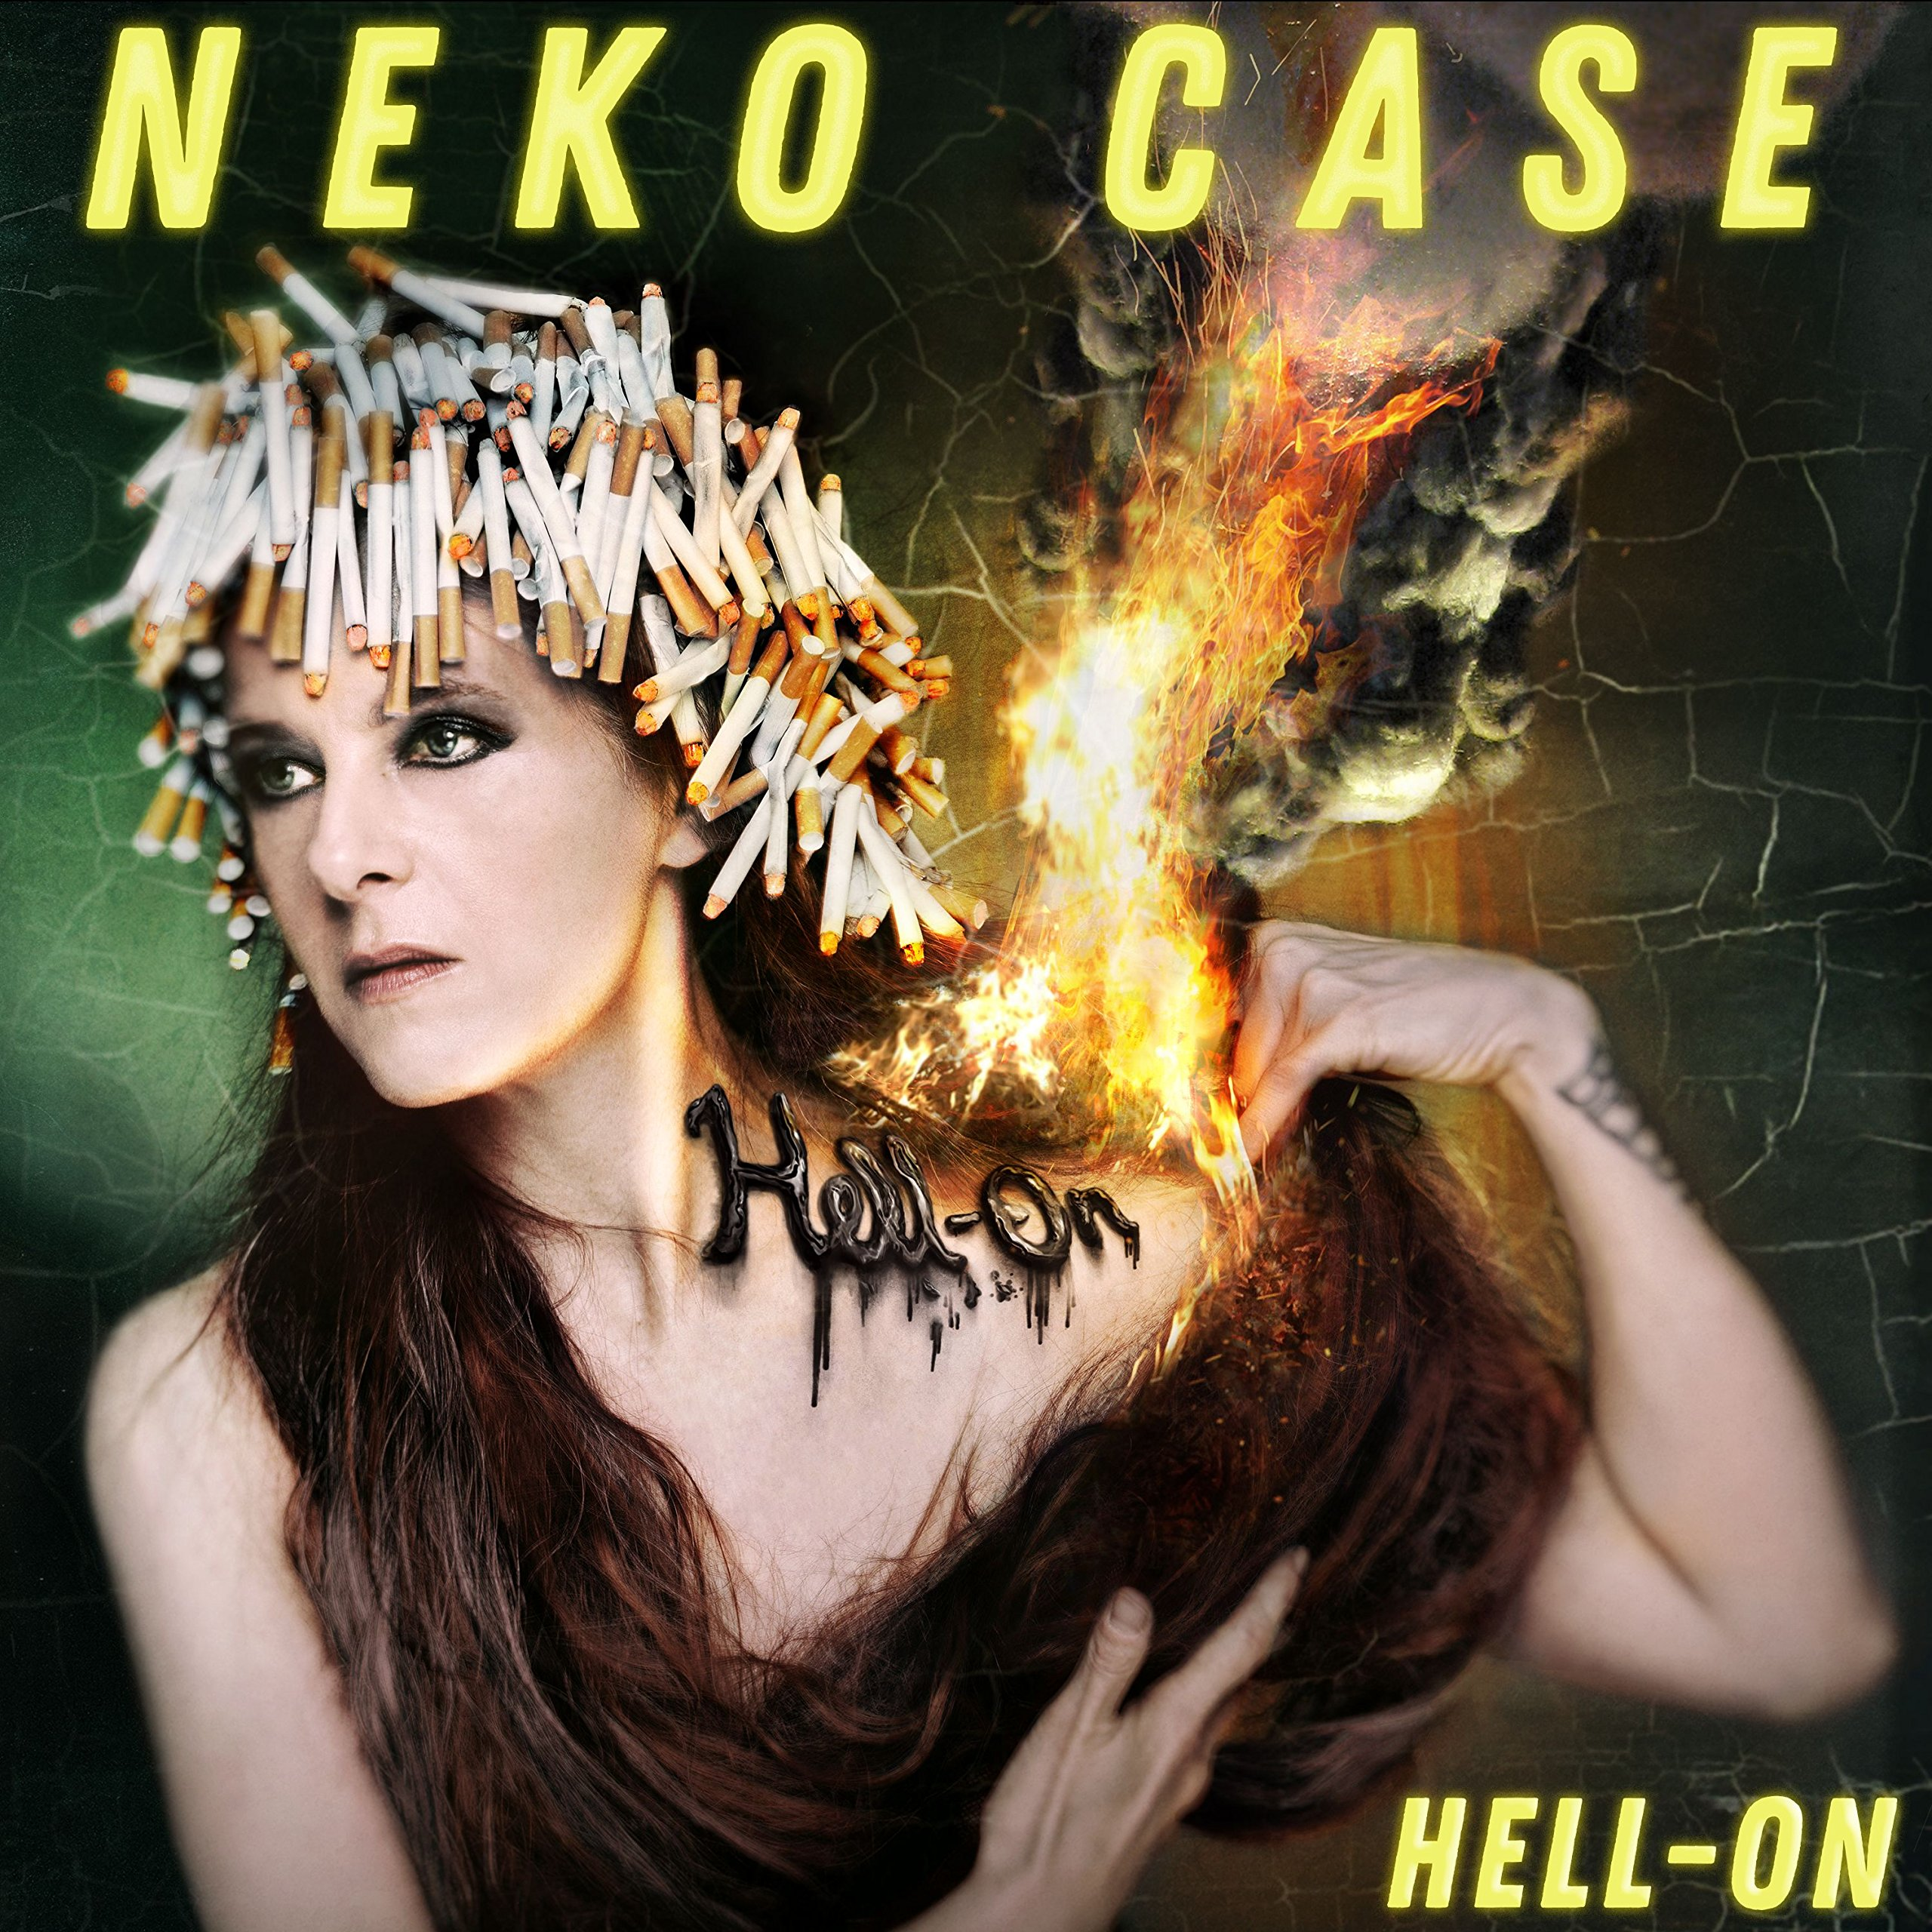 CD : Neko Case - Hell-on (CD)